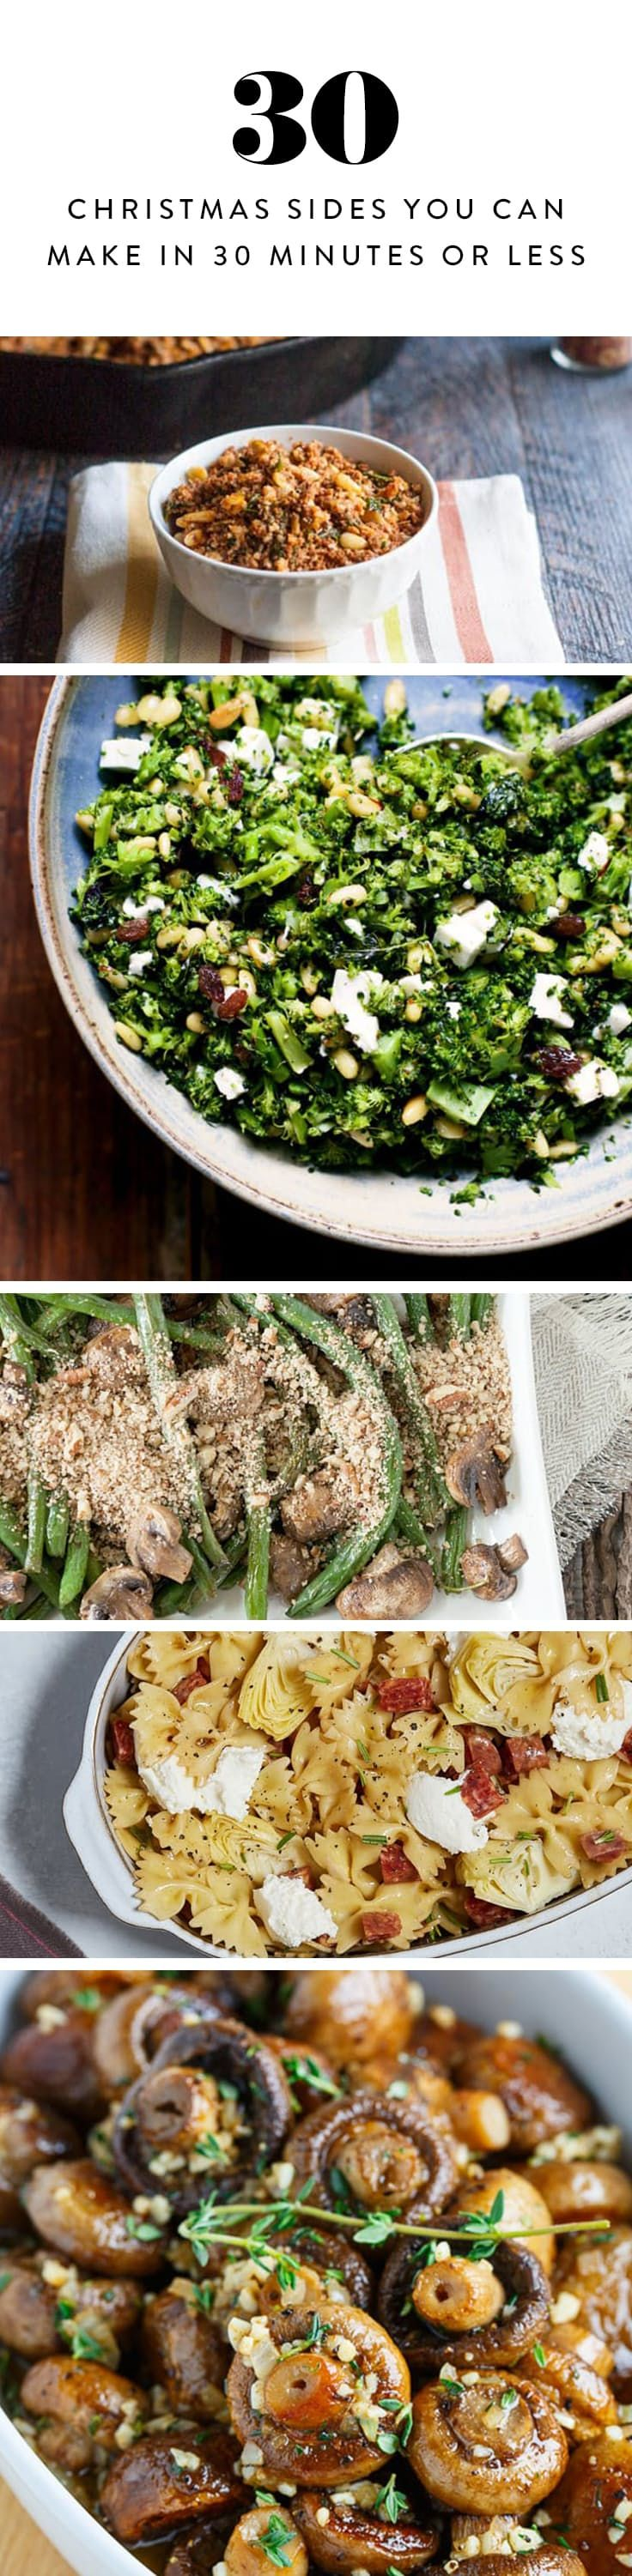 30 christmas sides you can make in 30 minutes or less via purewow - Christmas Side Dishes Pinterest